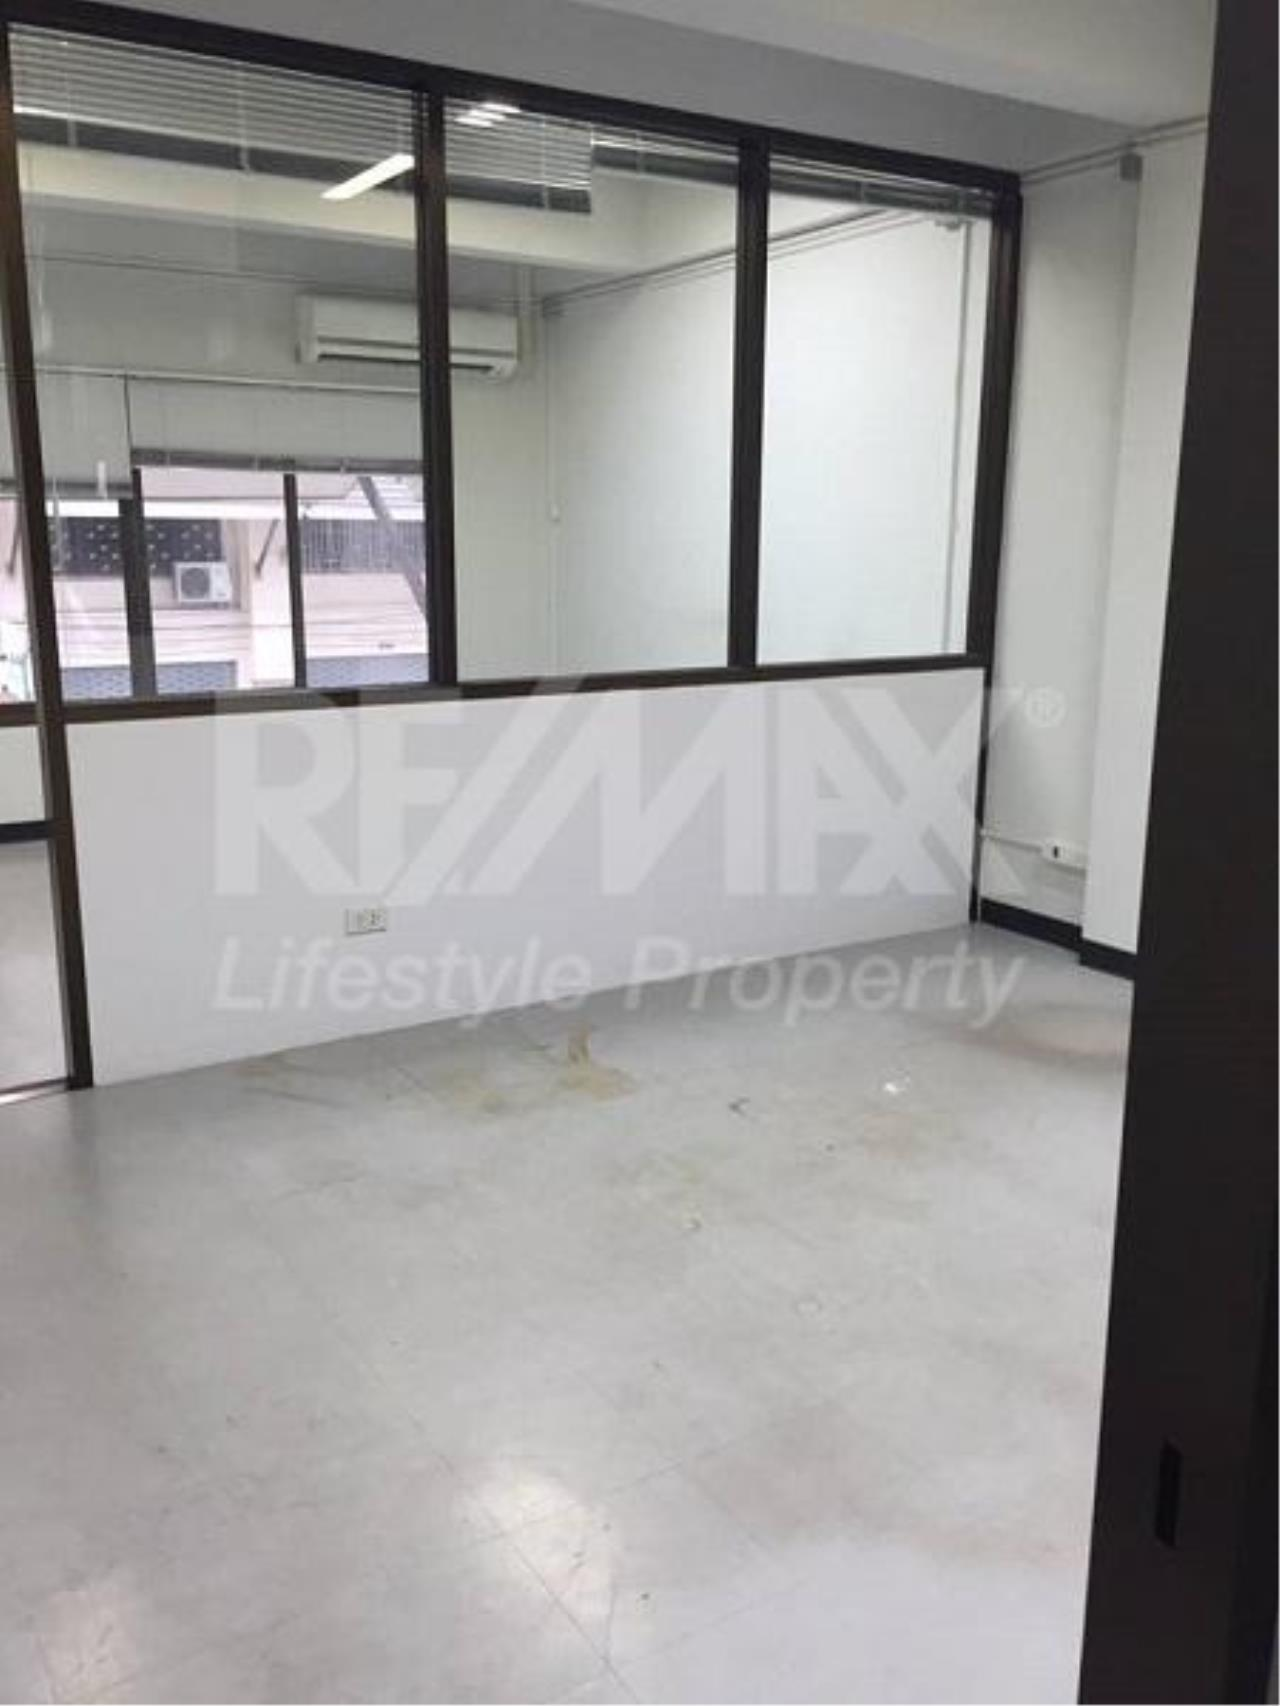 RE/MAX LifeStyle Property Agency's Commercial Rama 2 7